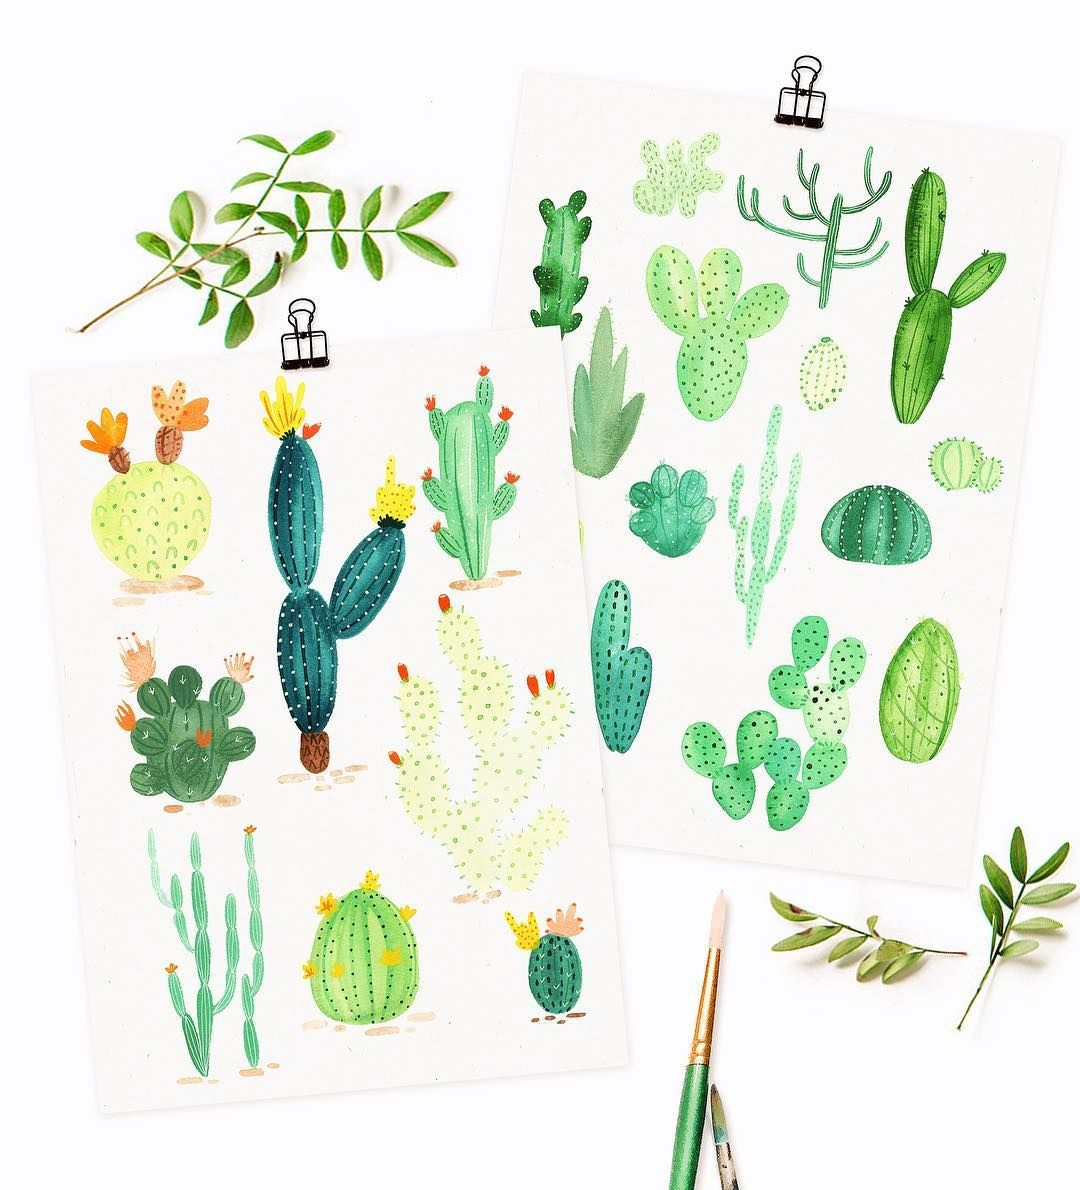 Hey y'all! 🌵 Happy Monday- Set of 2 cactus postcards are now in the shop! + greeting cards + prints! (If you order this week there will be a special goodie inside 😚✨) www.haveanicedayy.etsy.com